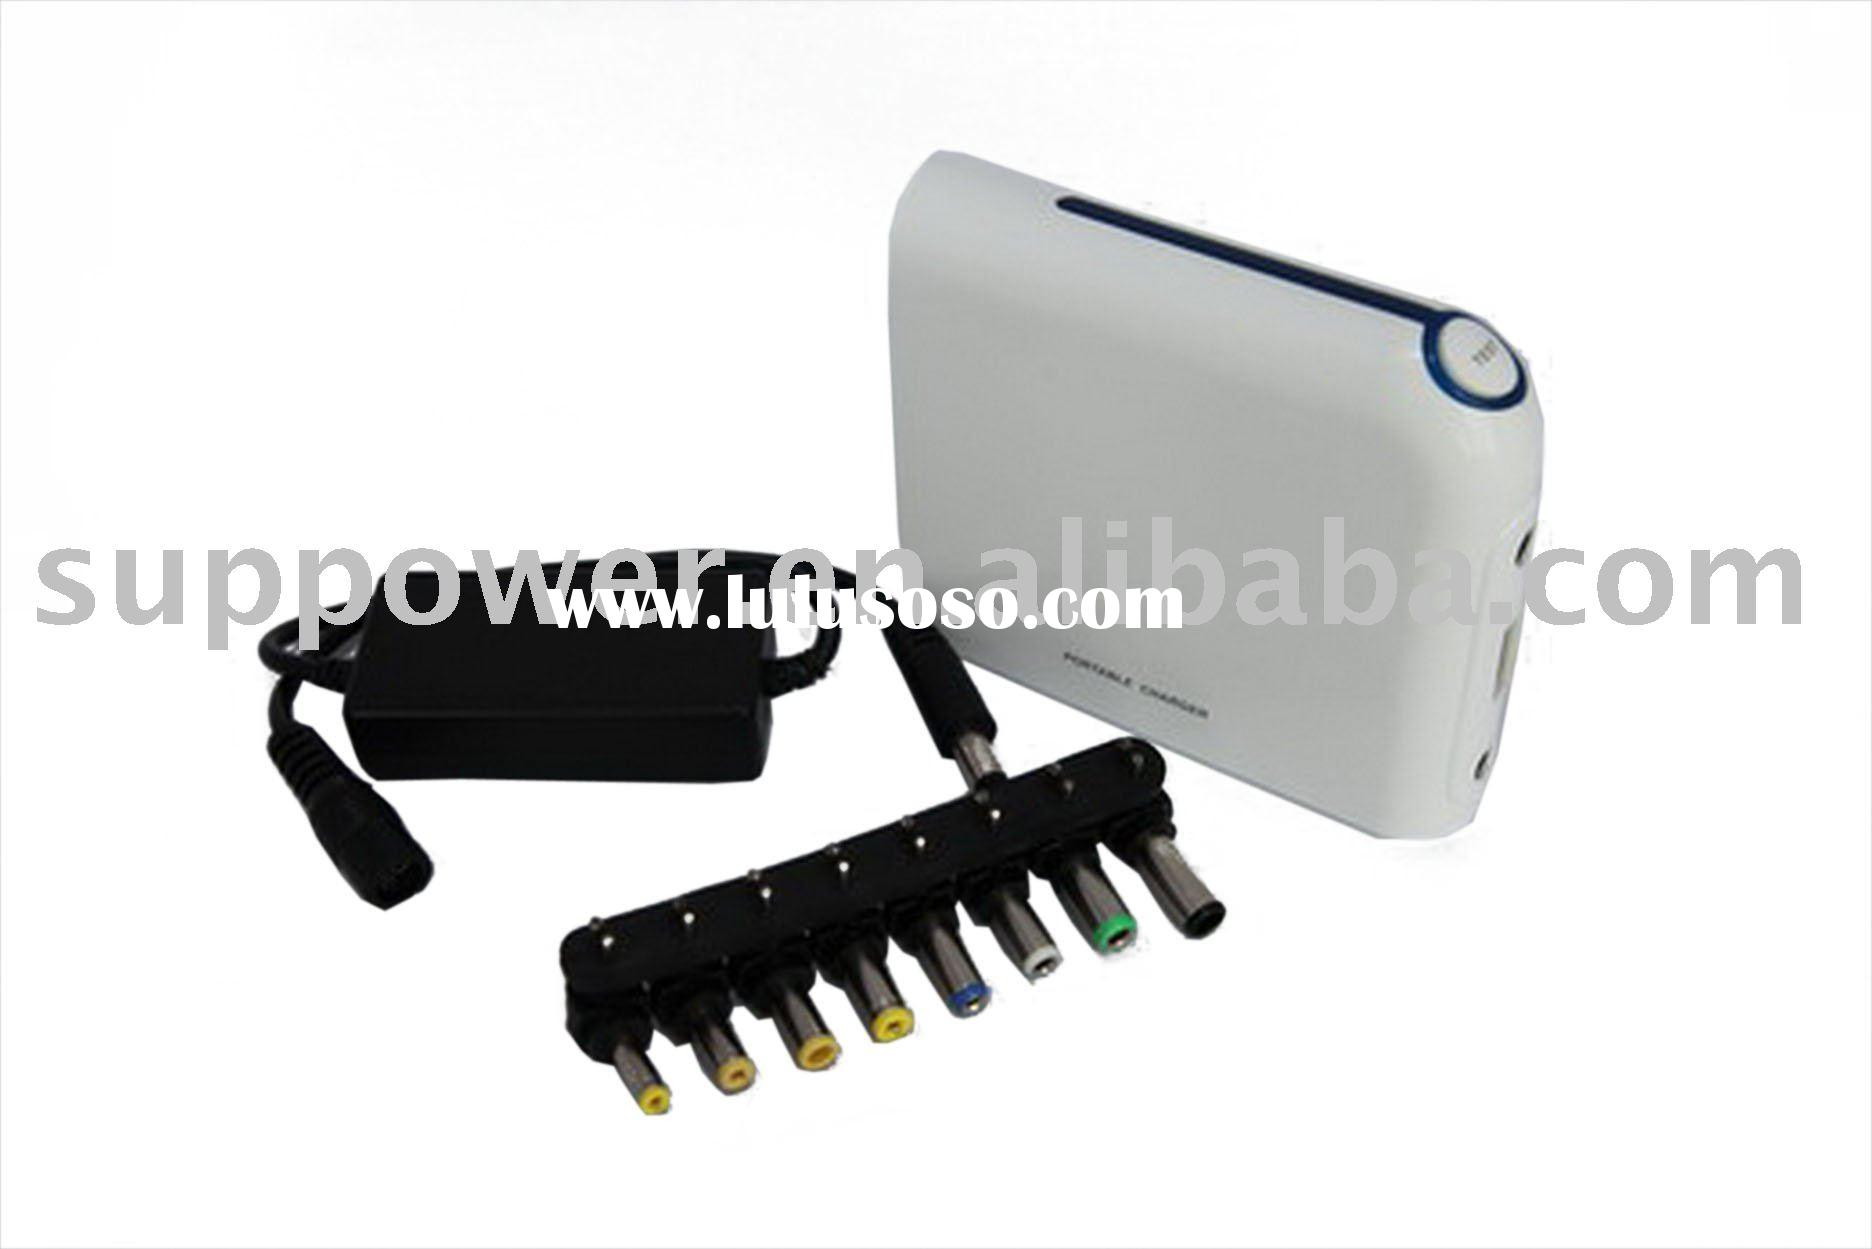 8800MAH emergency battery charger for laptop, mobile,camera,digital devices